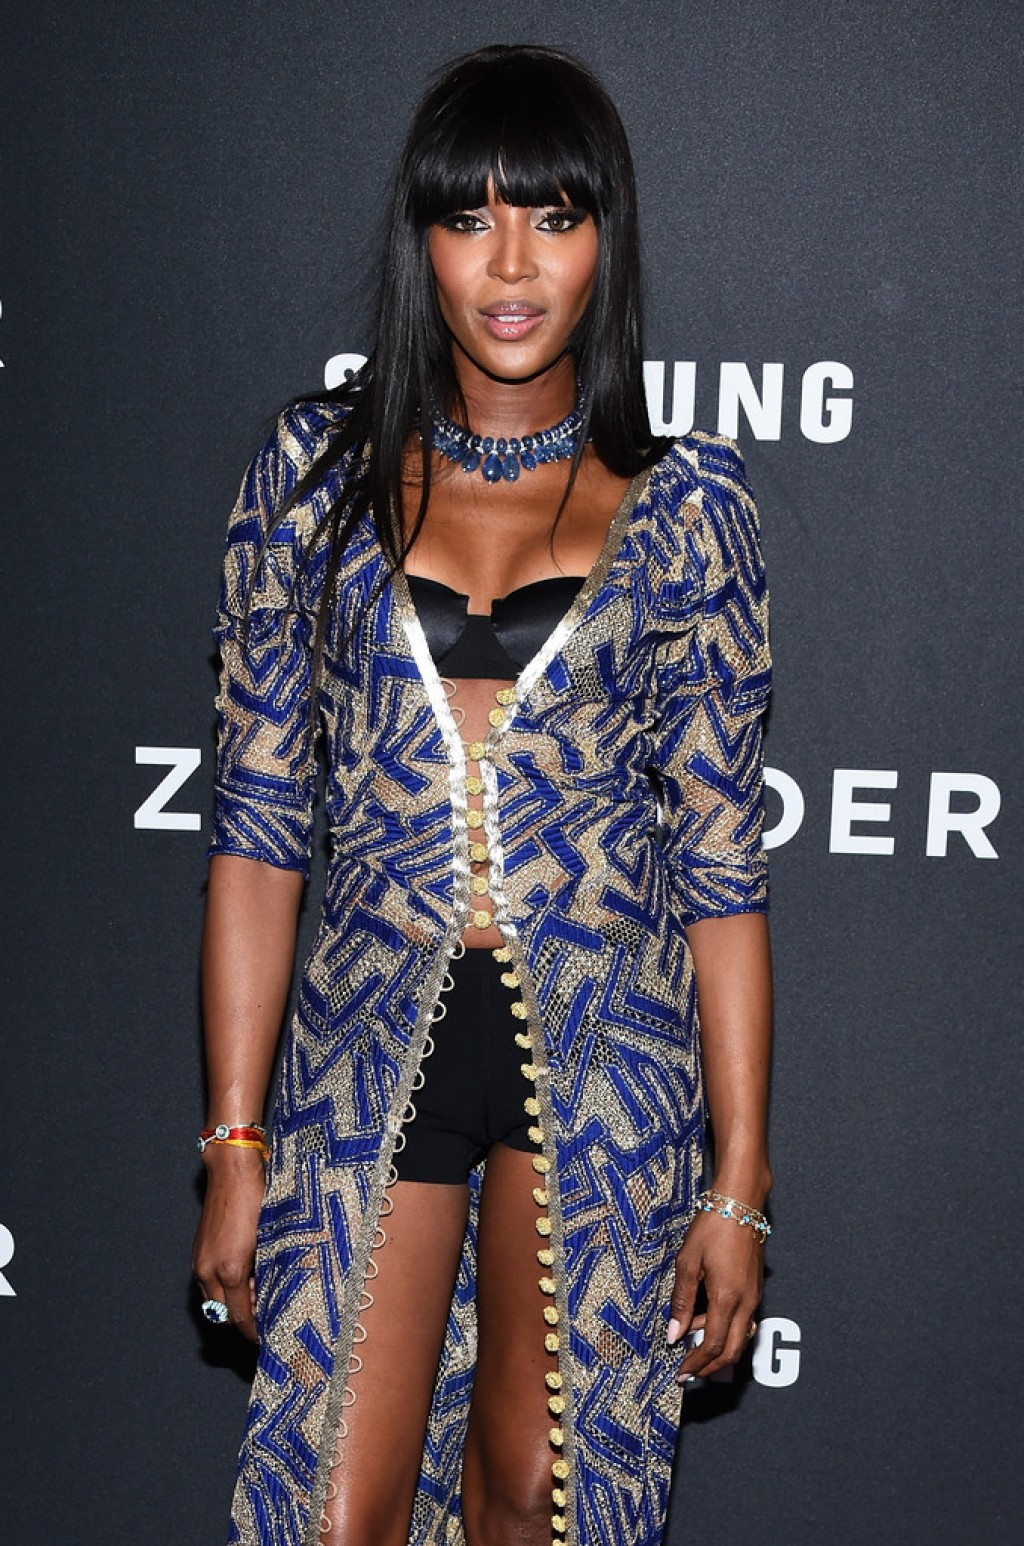 naomi-campbell-zoolander-2-world-premiere-marc-jacobs-ook-1024x1546